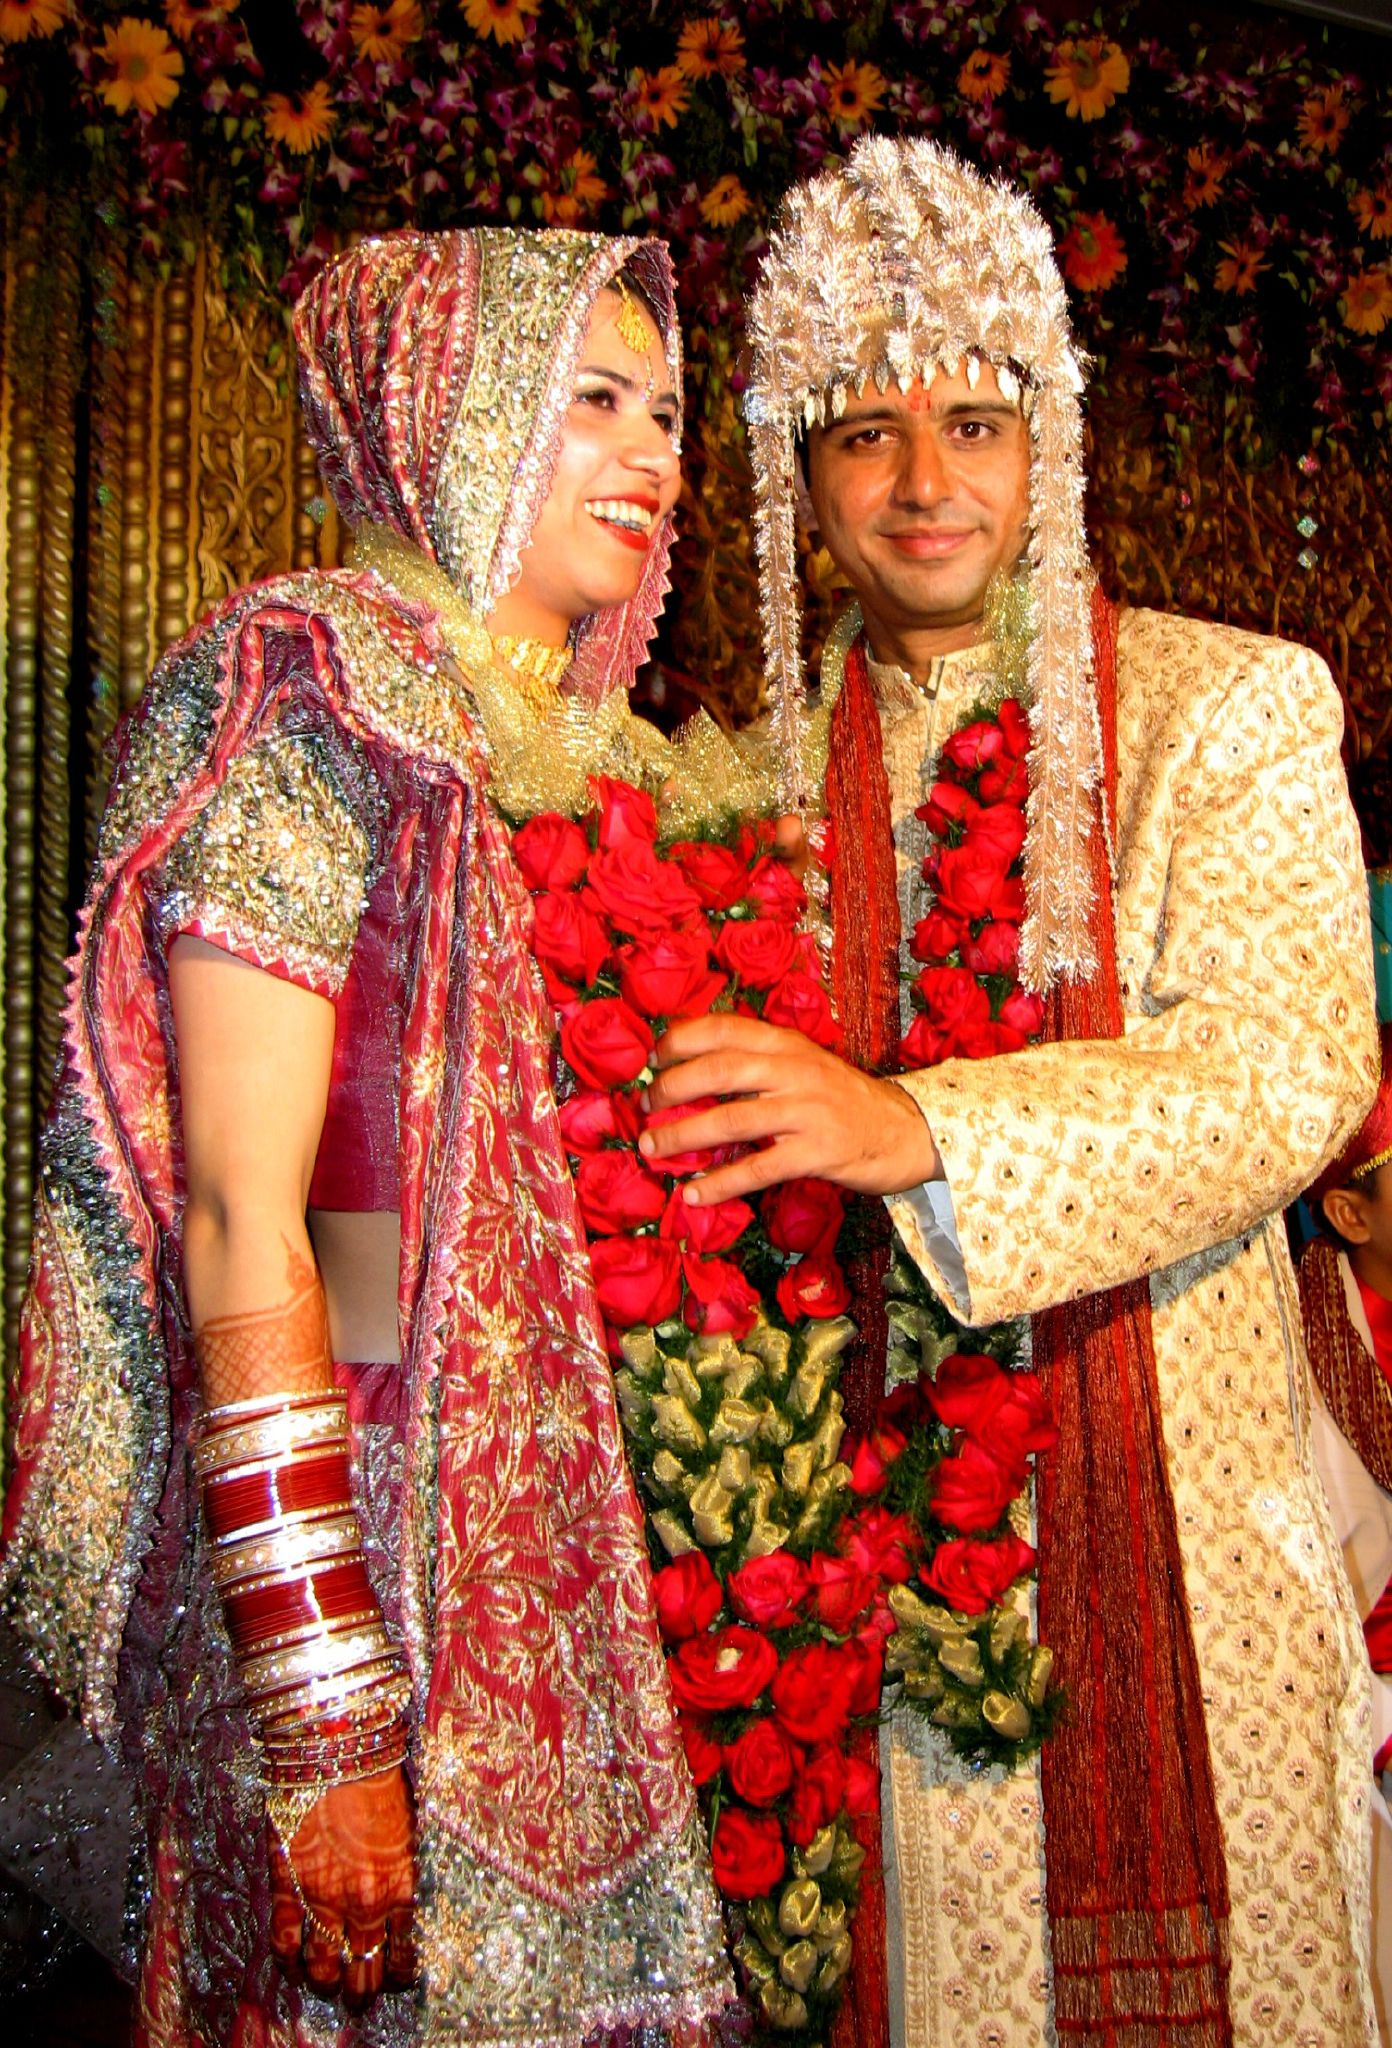 essay on indian wedding Bride in sari and groom in sherwani in a hindu indian wedding weddings in india vary regionally, the religion and per personal preferences of the bride and groom they are festive occasions in india, and in most cases celebrated with extensive decorations.